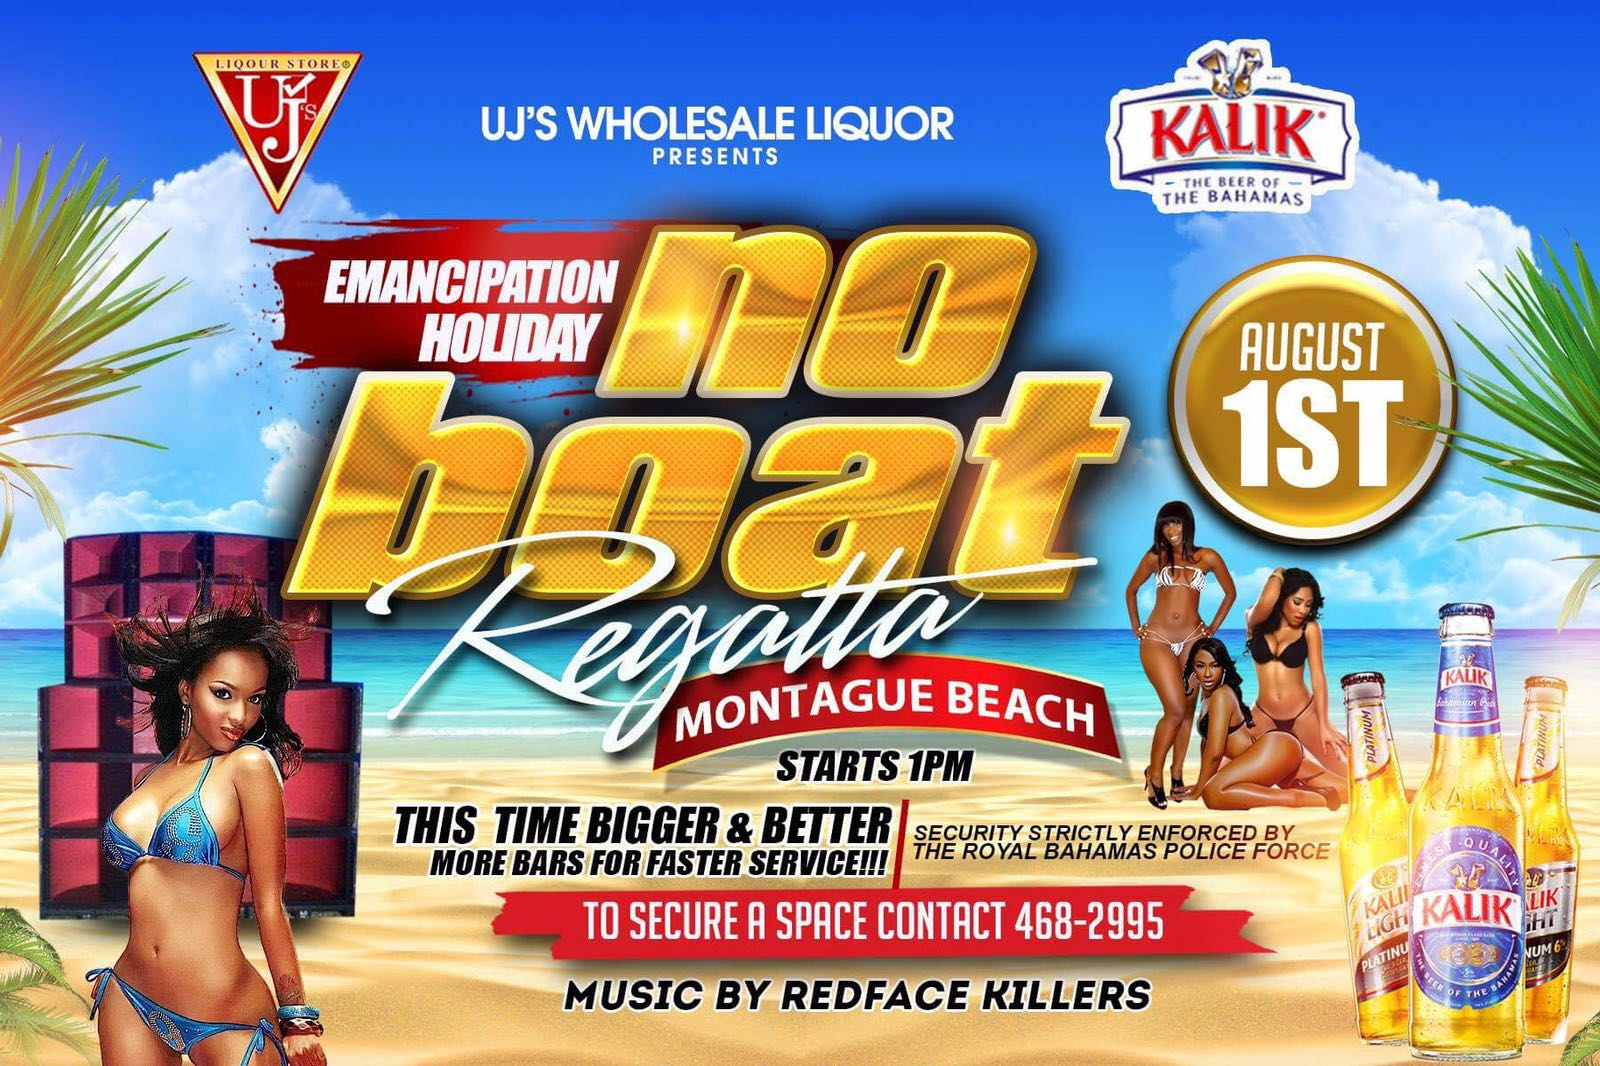 Kalik Emancipation Holiday No Boat Regatta